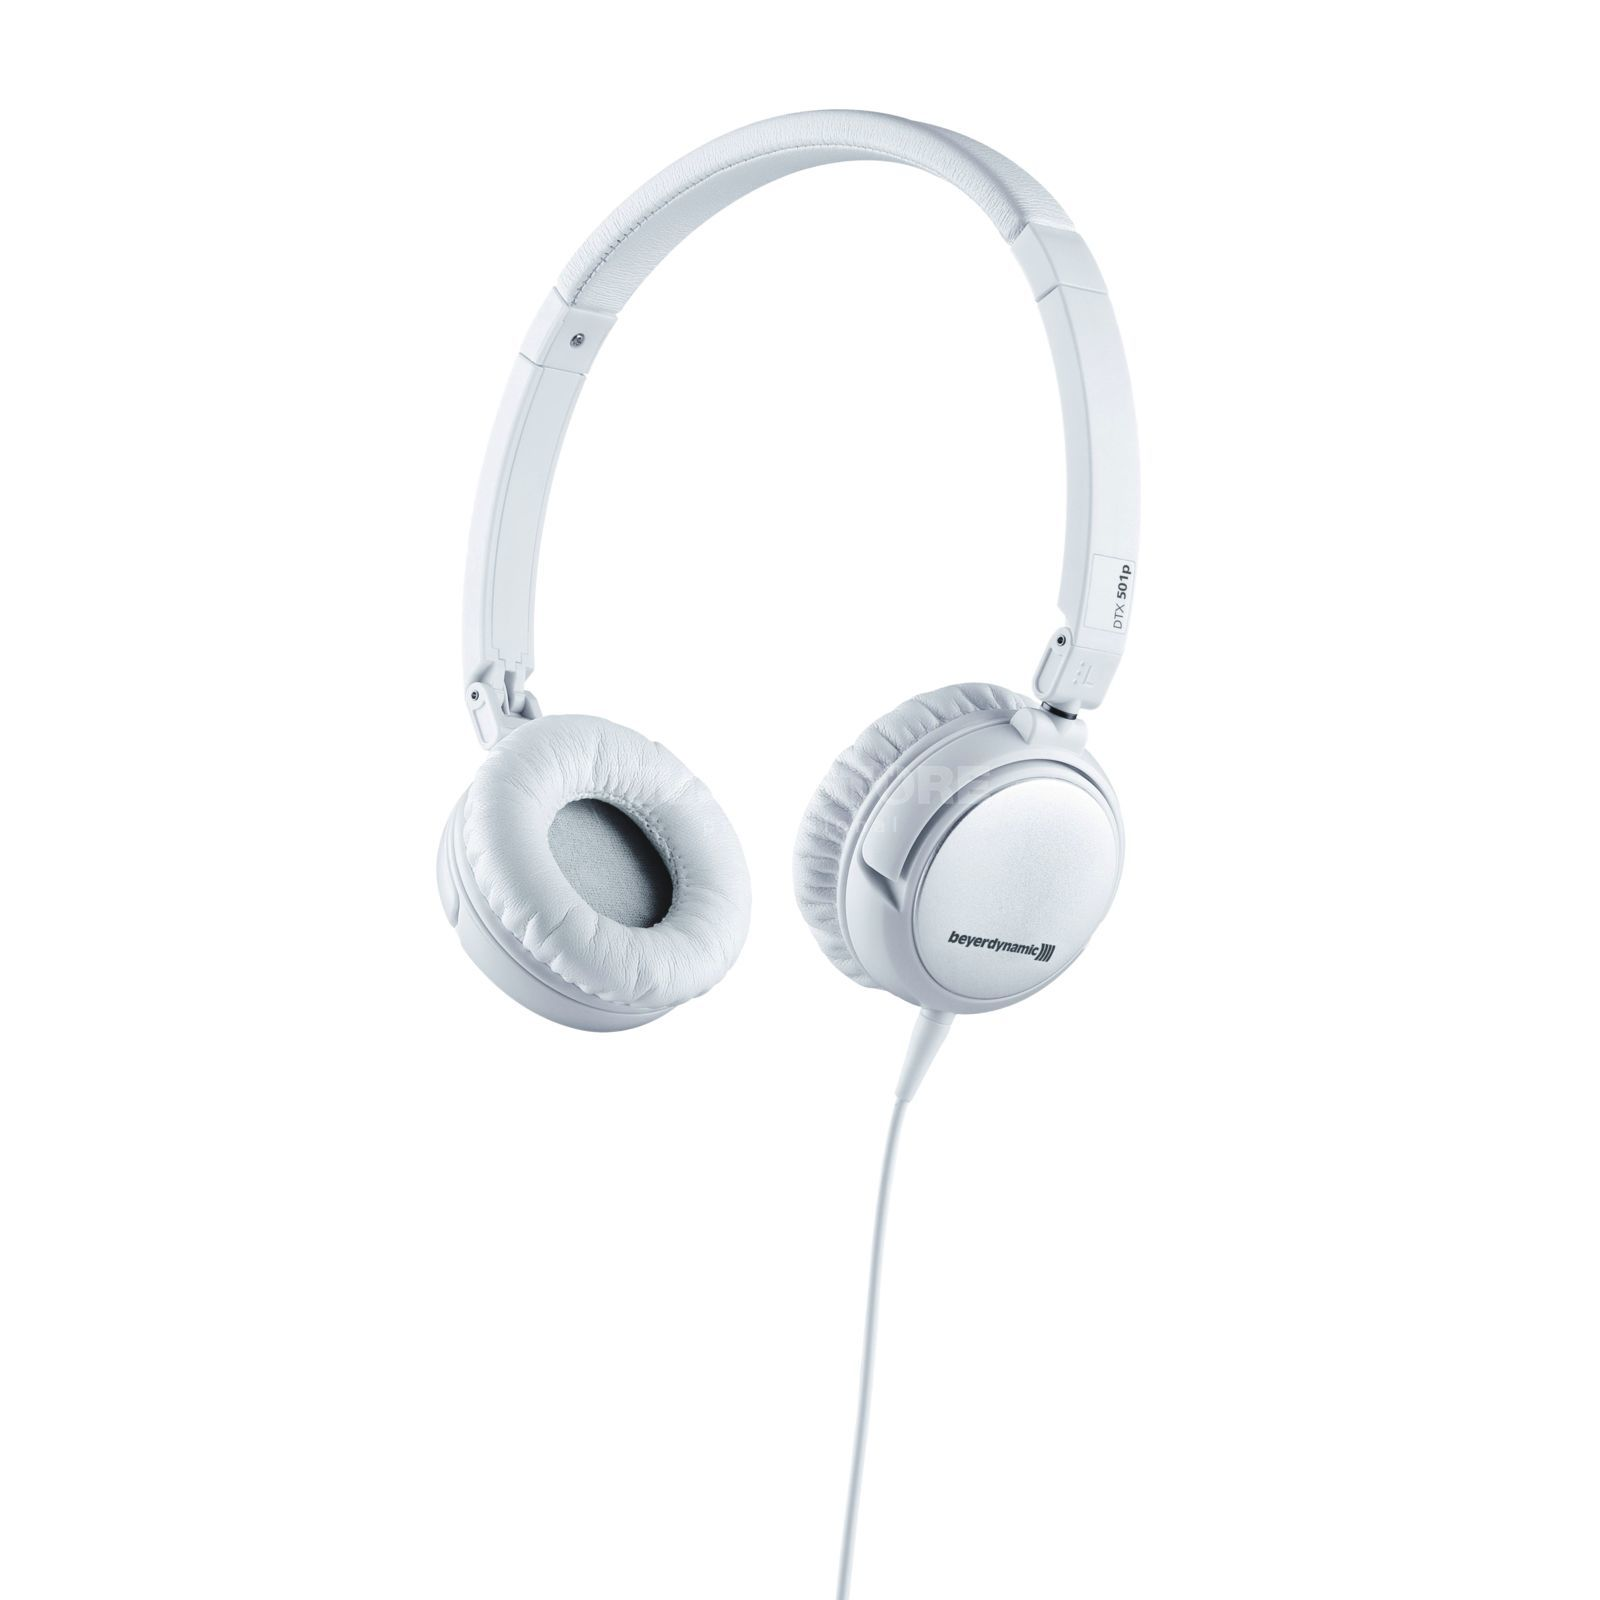 Beyerdynamic DTx - 501 p white foldable Headphones Produktbillede